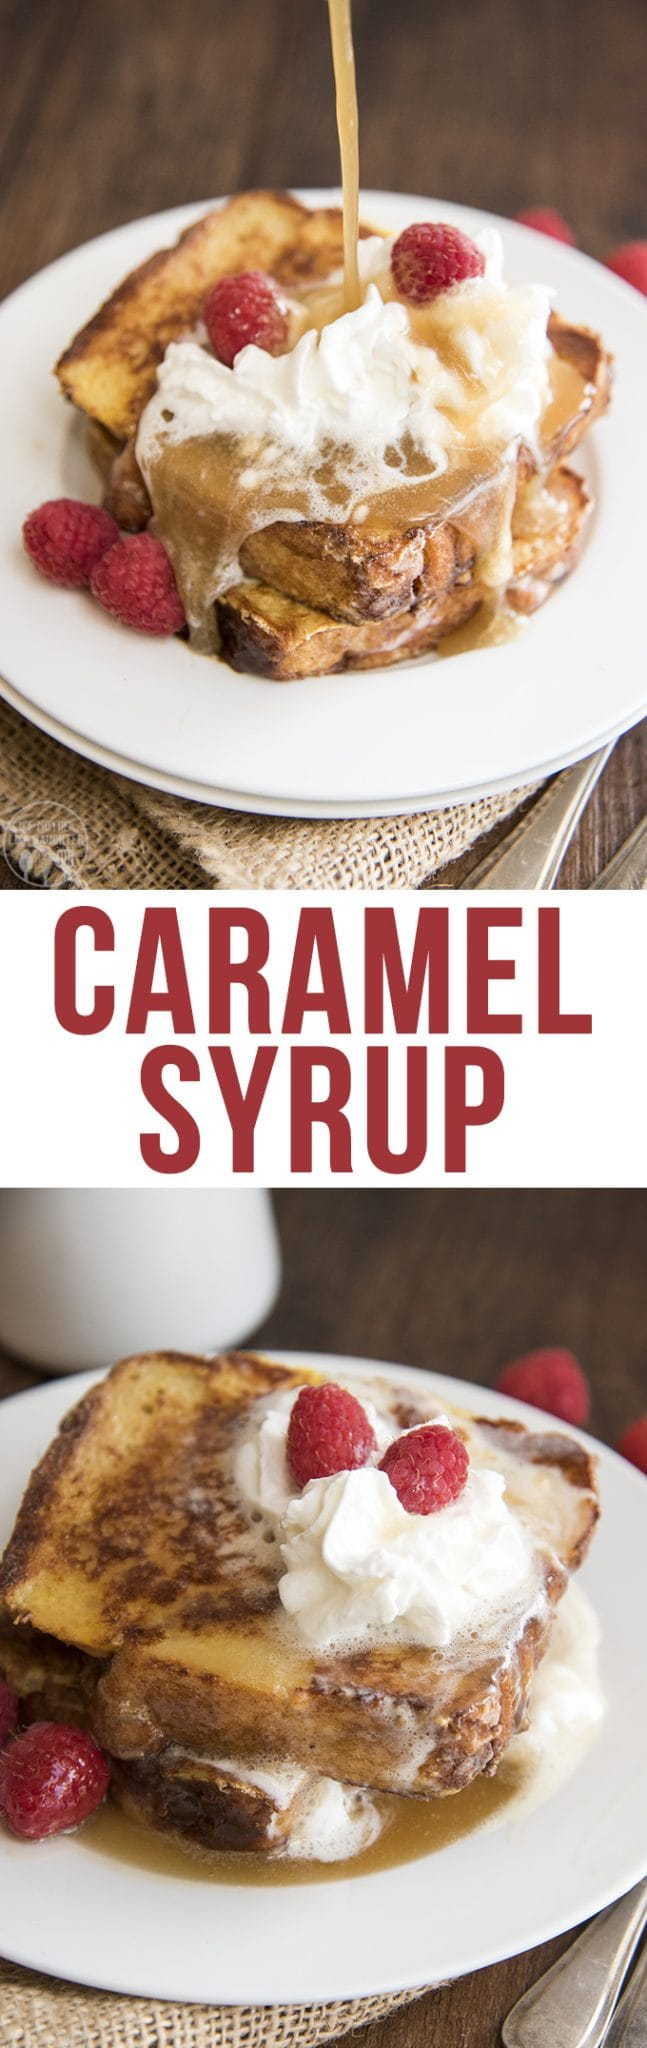 This caramel syrup is the best syrup to serve all over french toast, pancakes or waffles. Its so good, you'll be licking your plate clean!